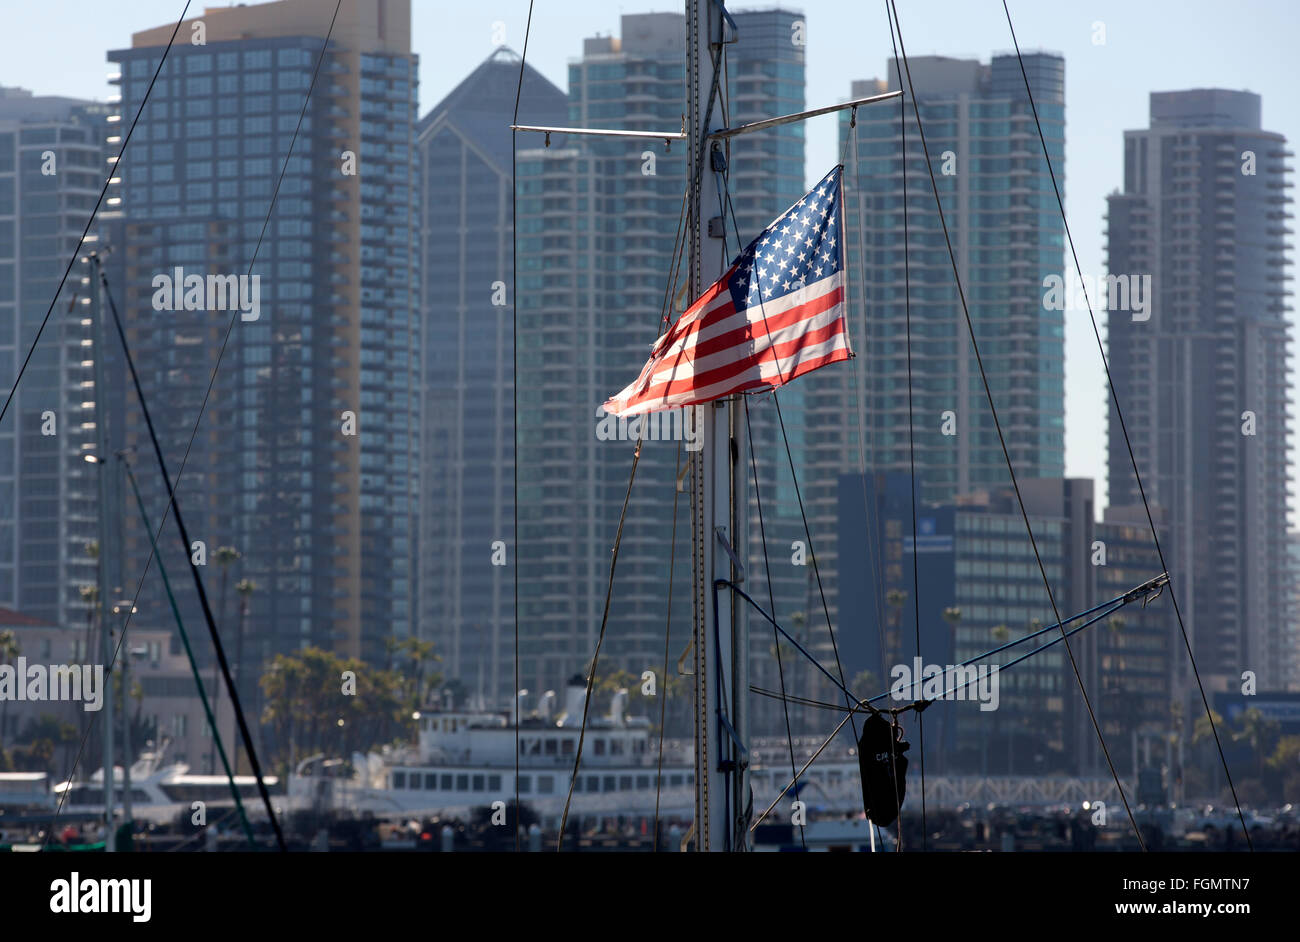 flag in sailboat rigging, San Diego skyline - Stock Image